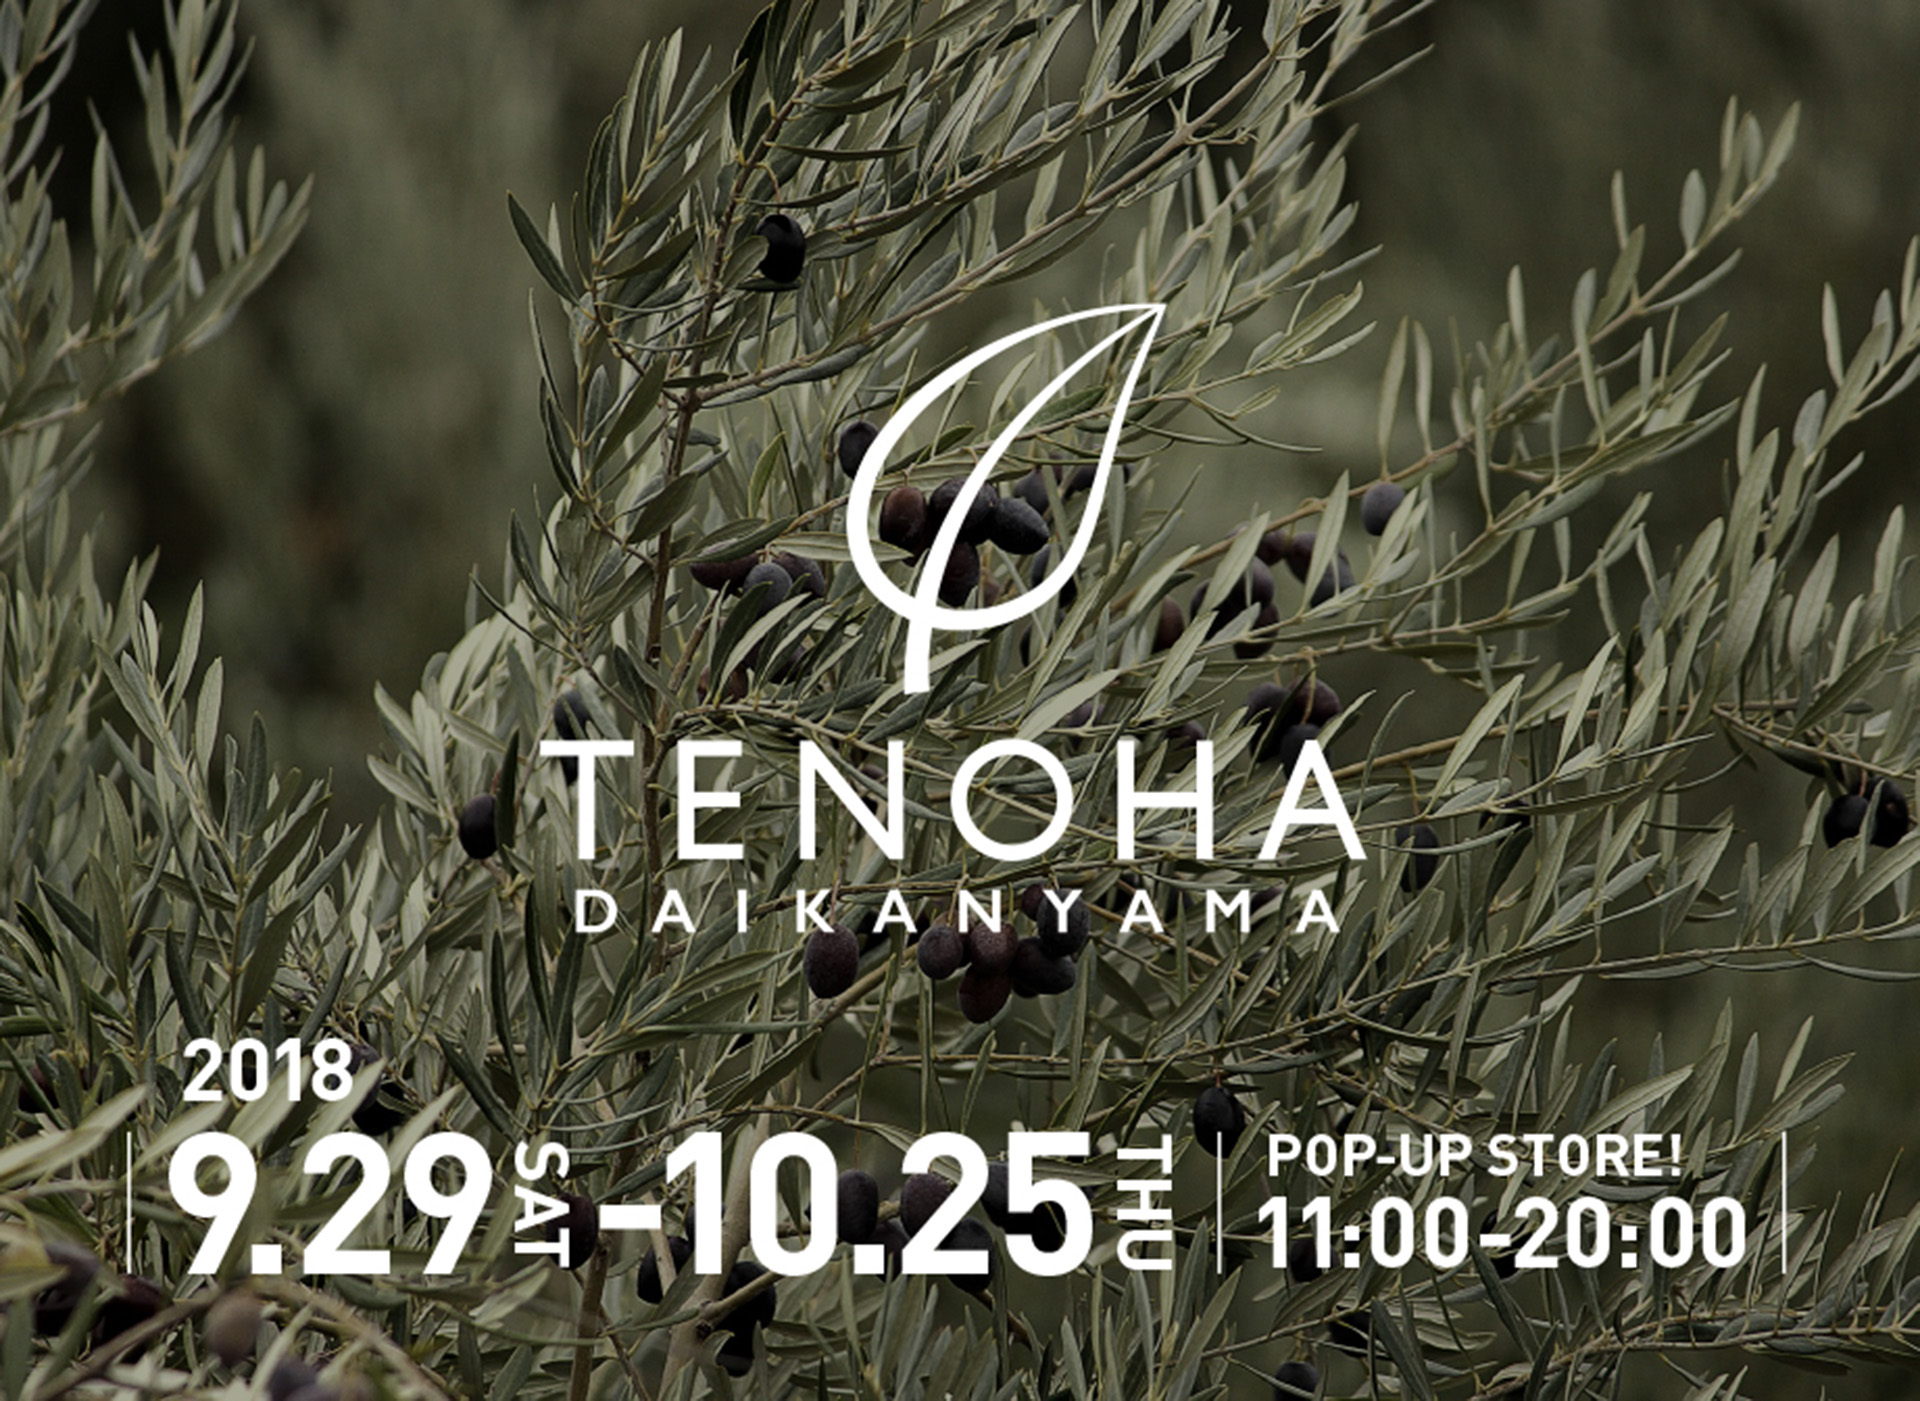 Pop-up store banner TENOHA logo on Olives